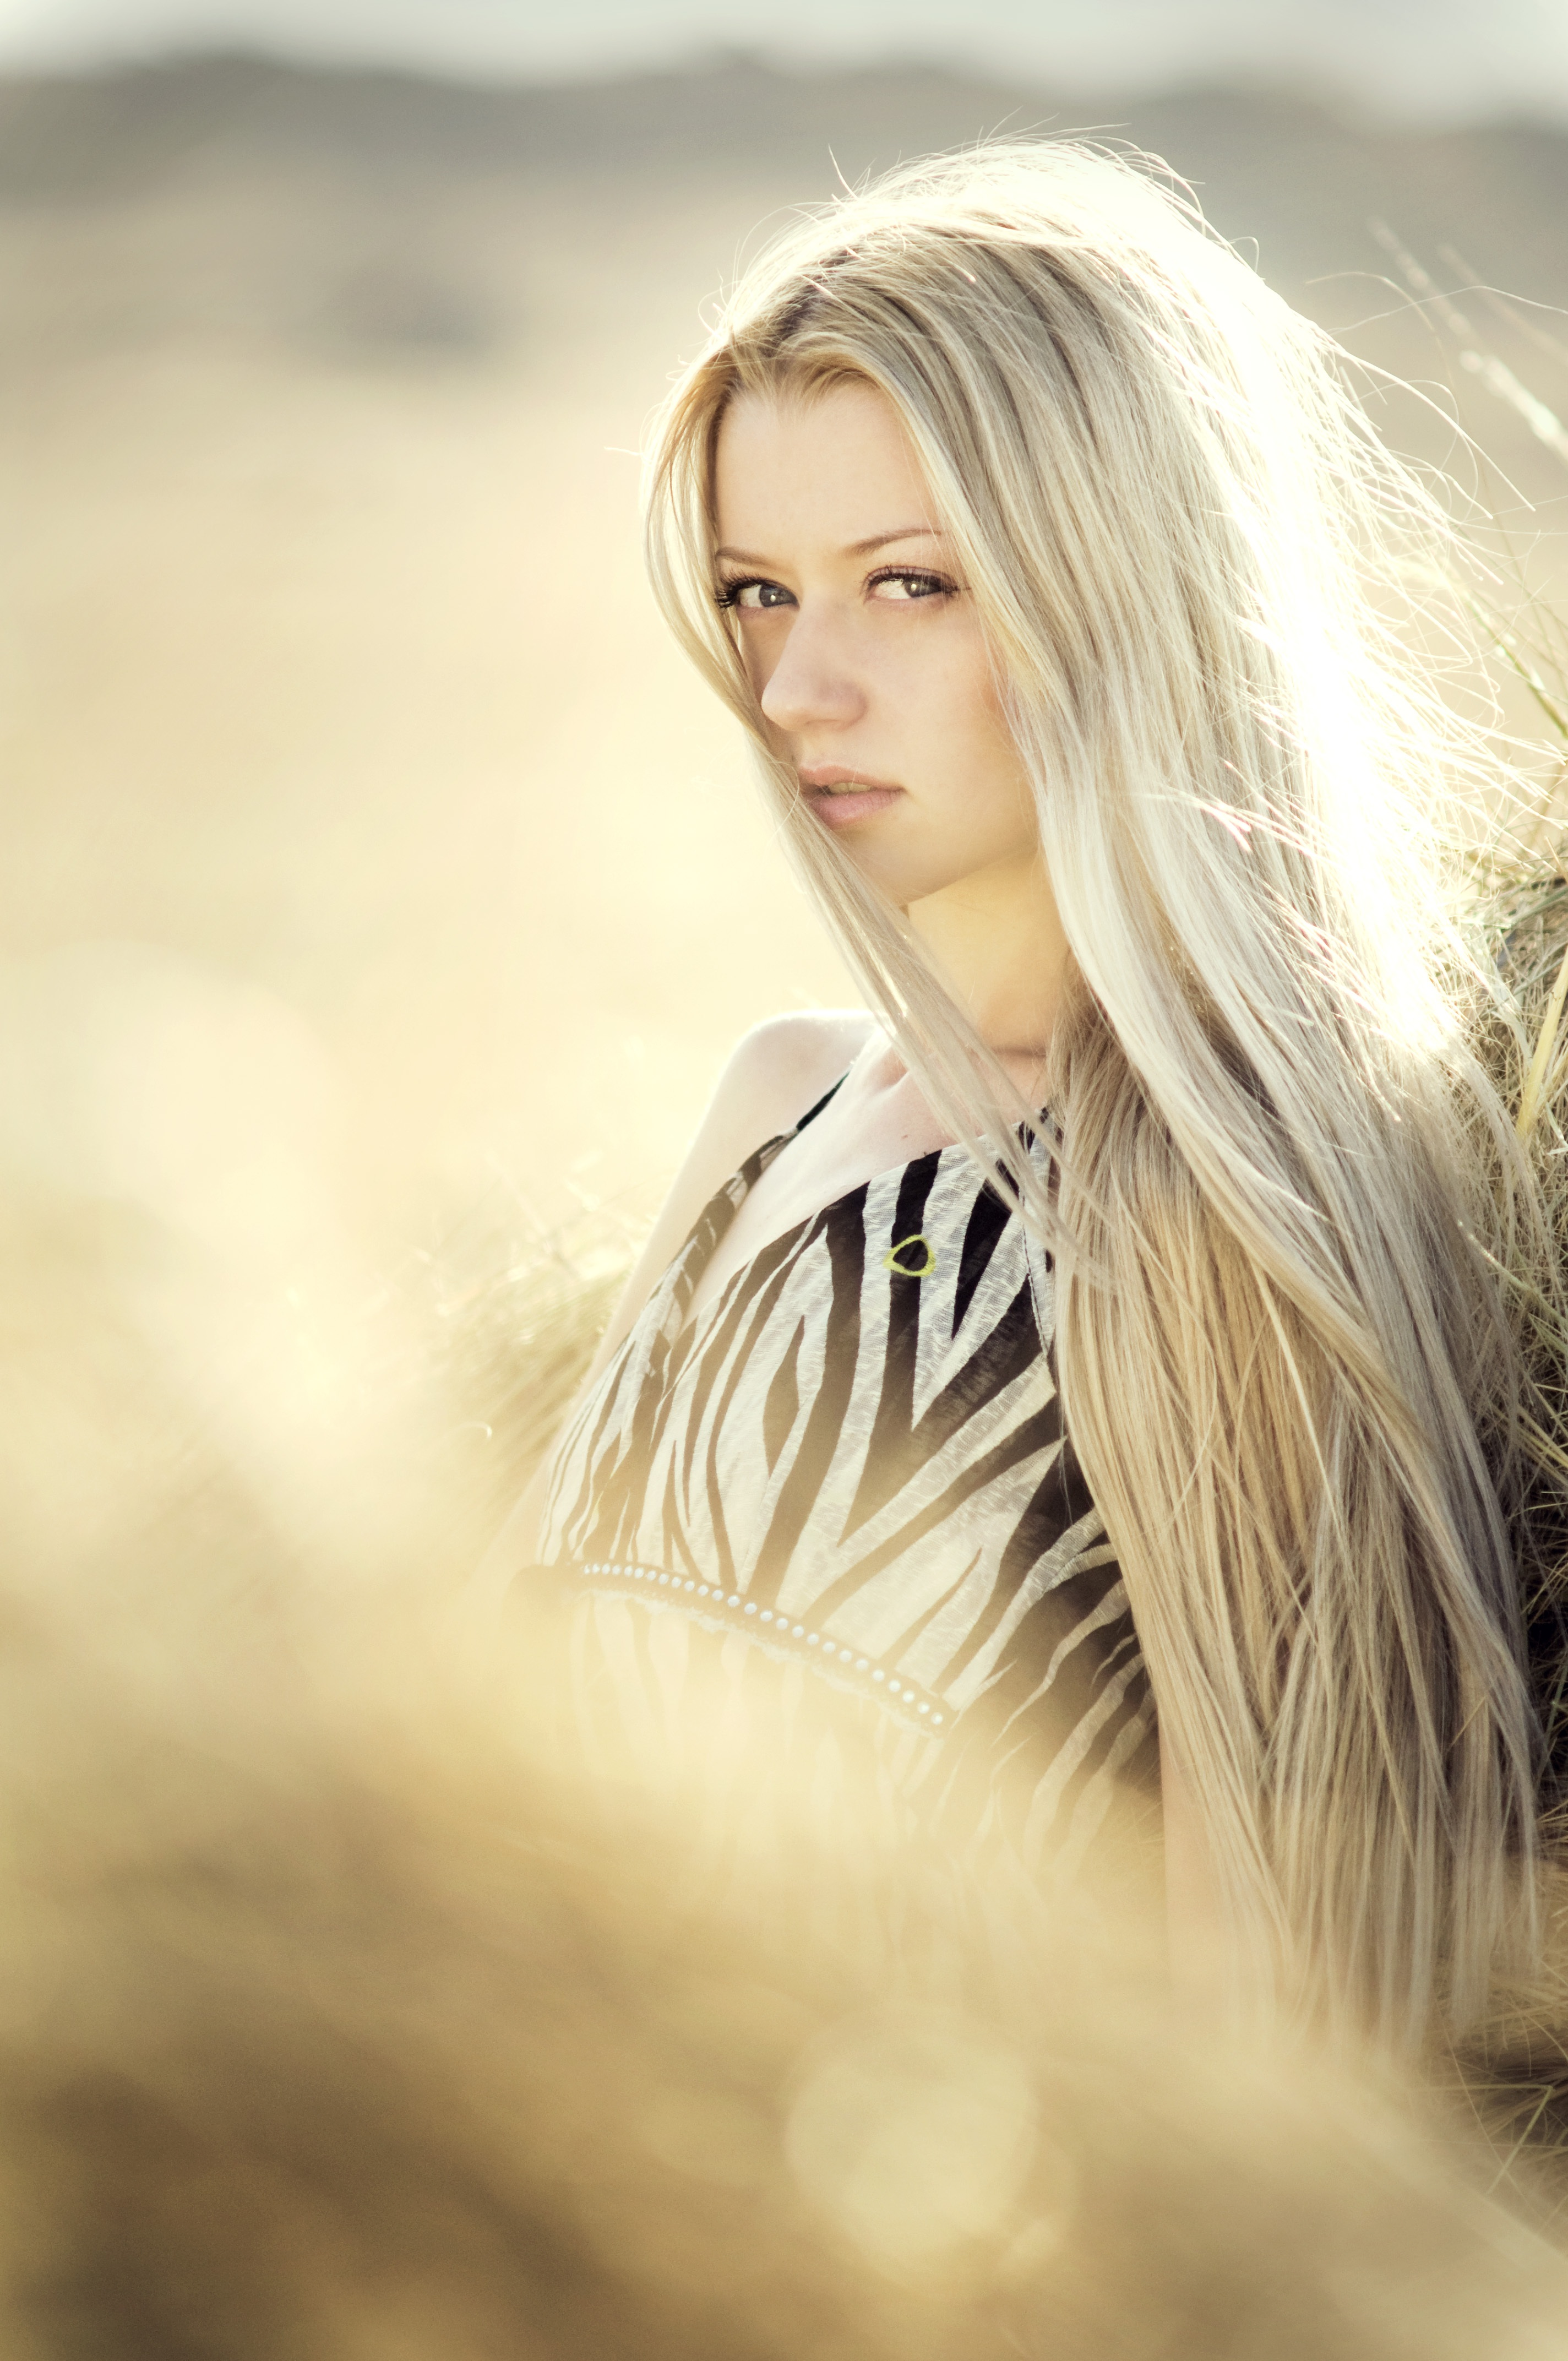 Beautiful Blondhaired 13years Old Girl Portrait Stock: Blonde Haired Woman In Open Field Photoshoot During